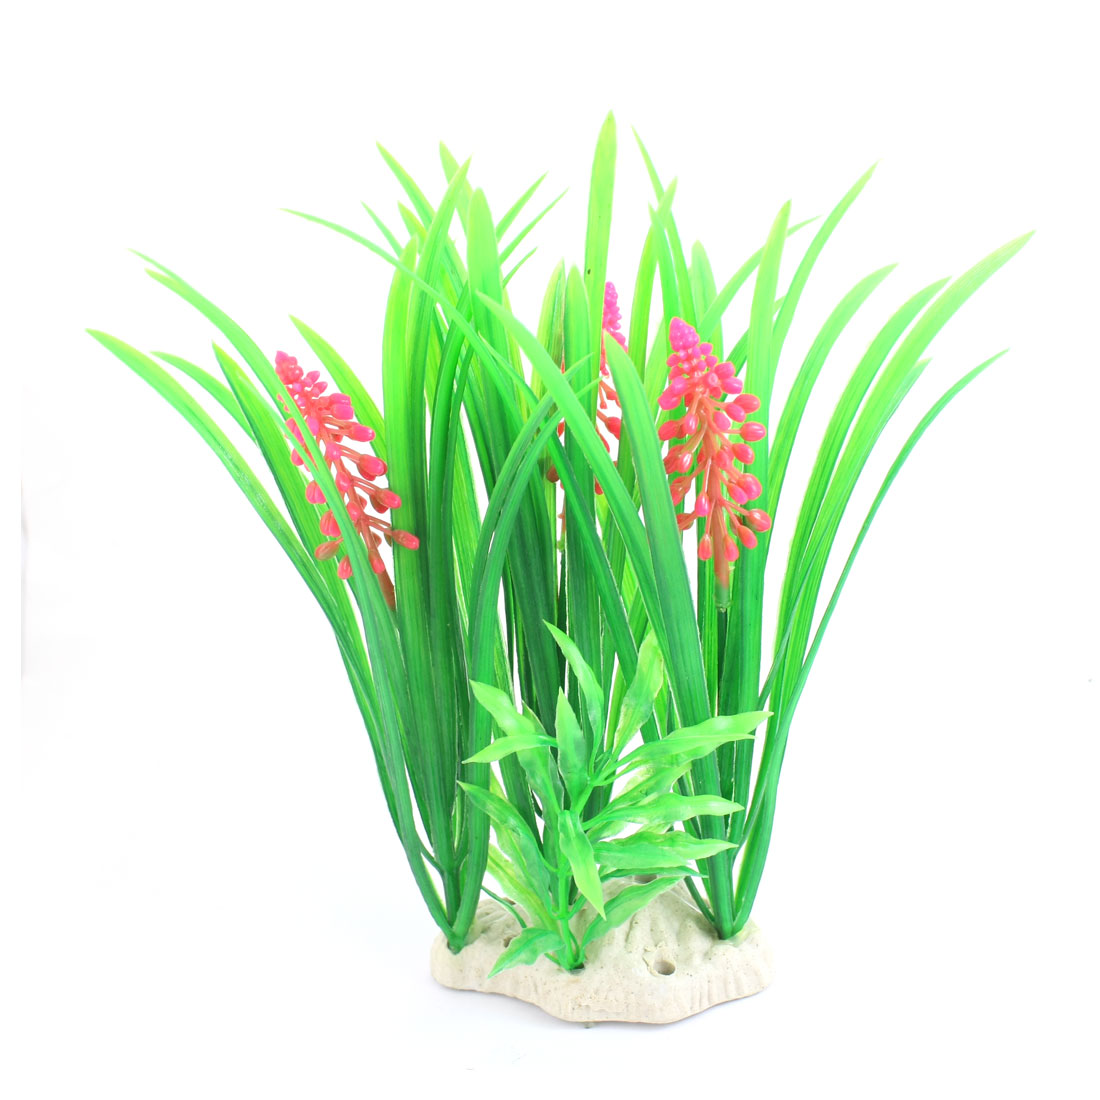 "Aquarium Underwater Landscaping Plastic Grass Plant Decor Green 8.7"" High"